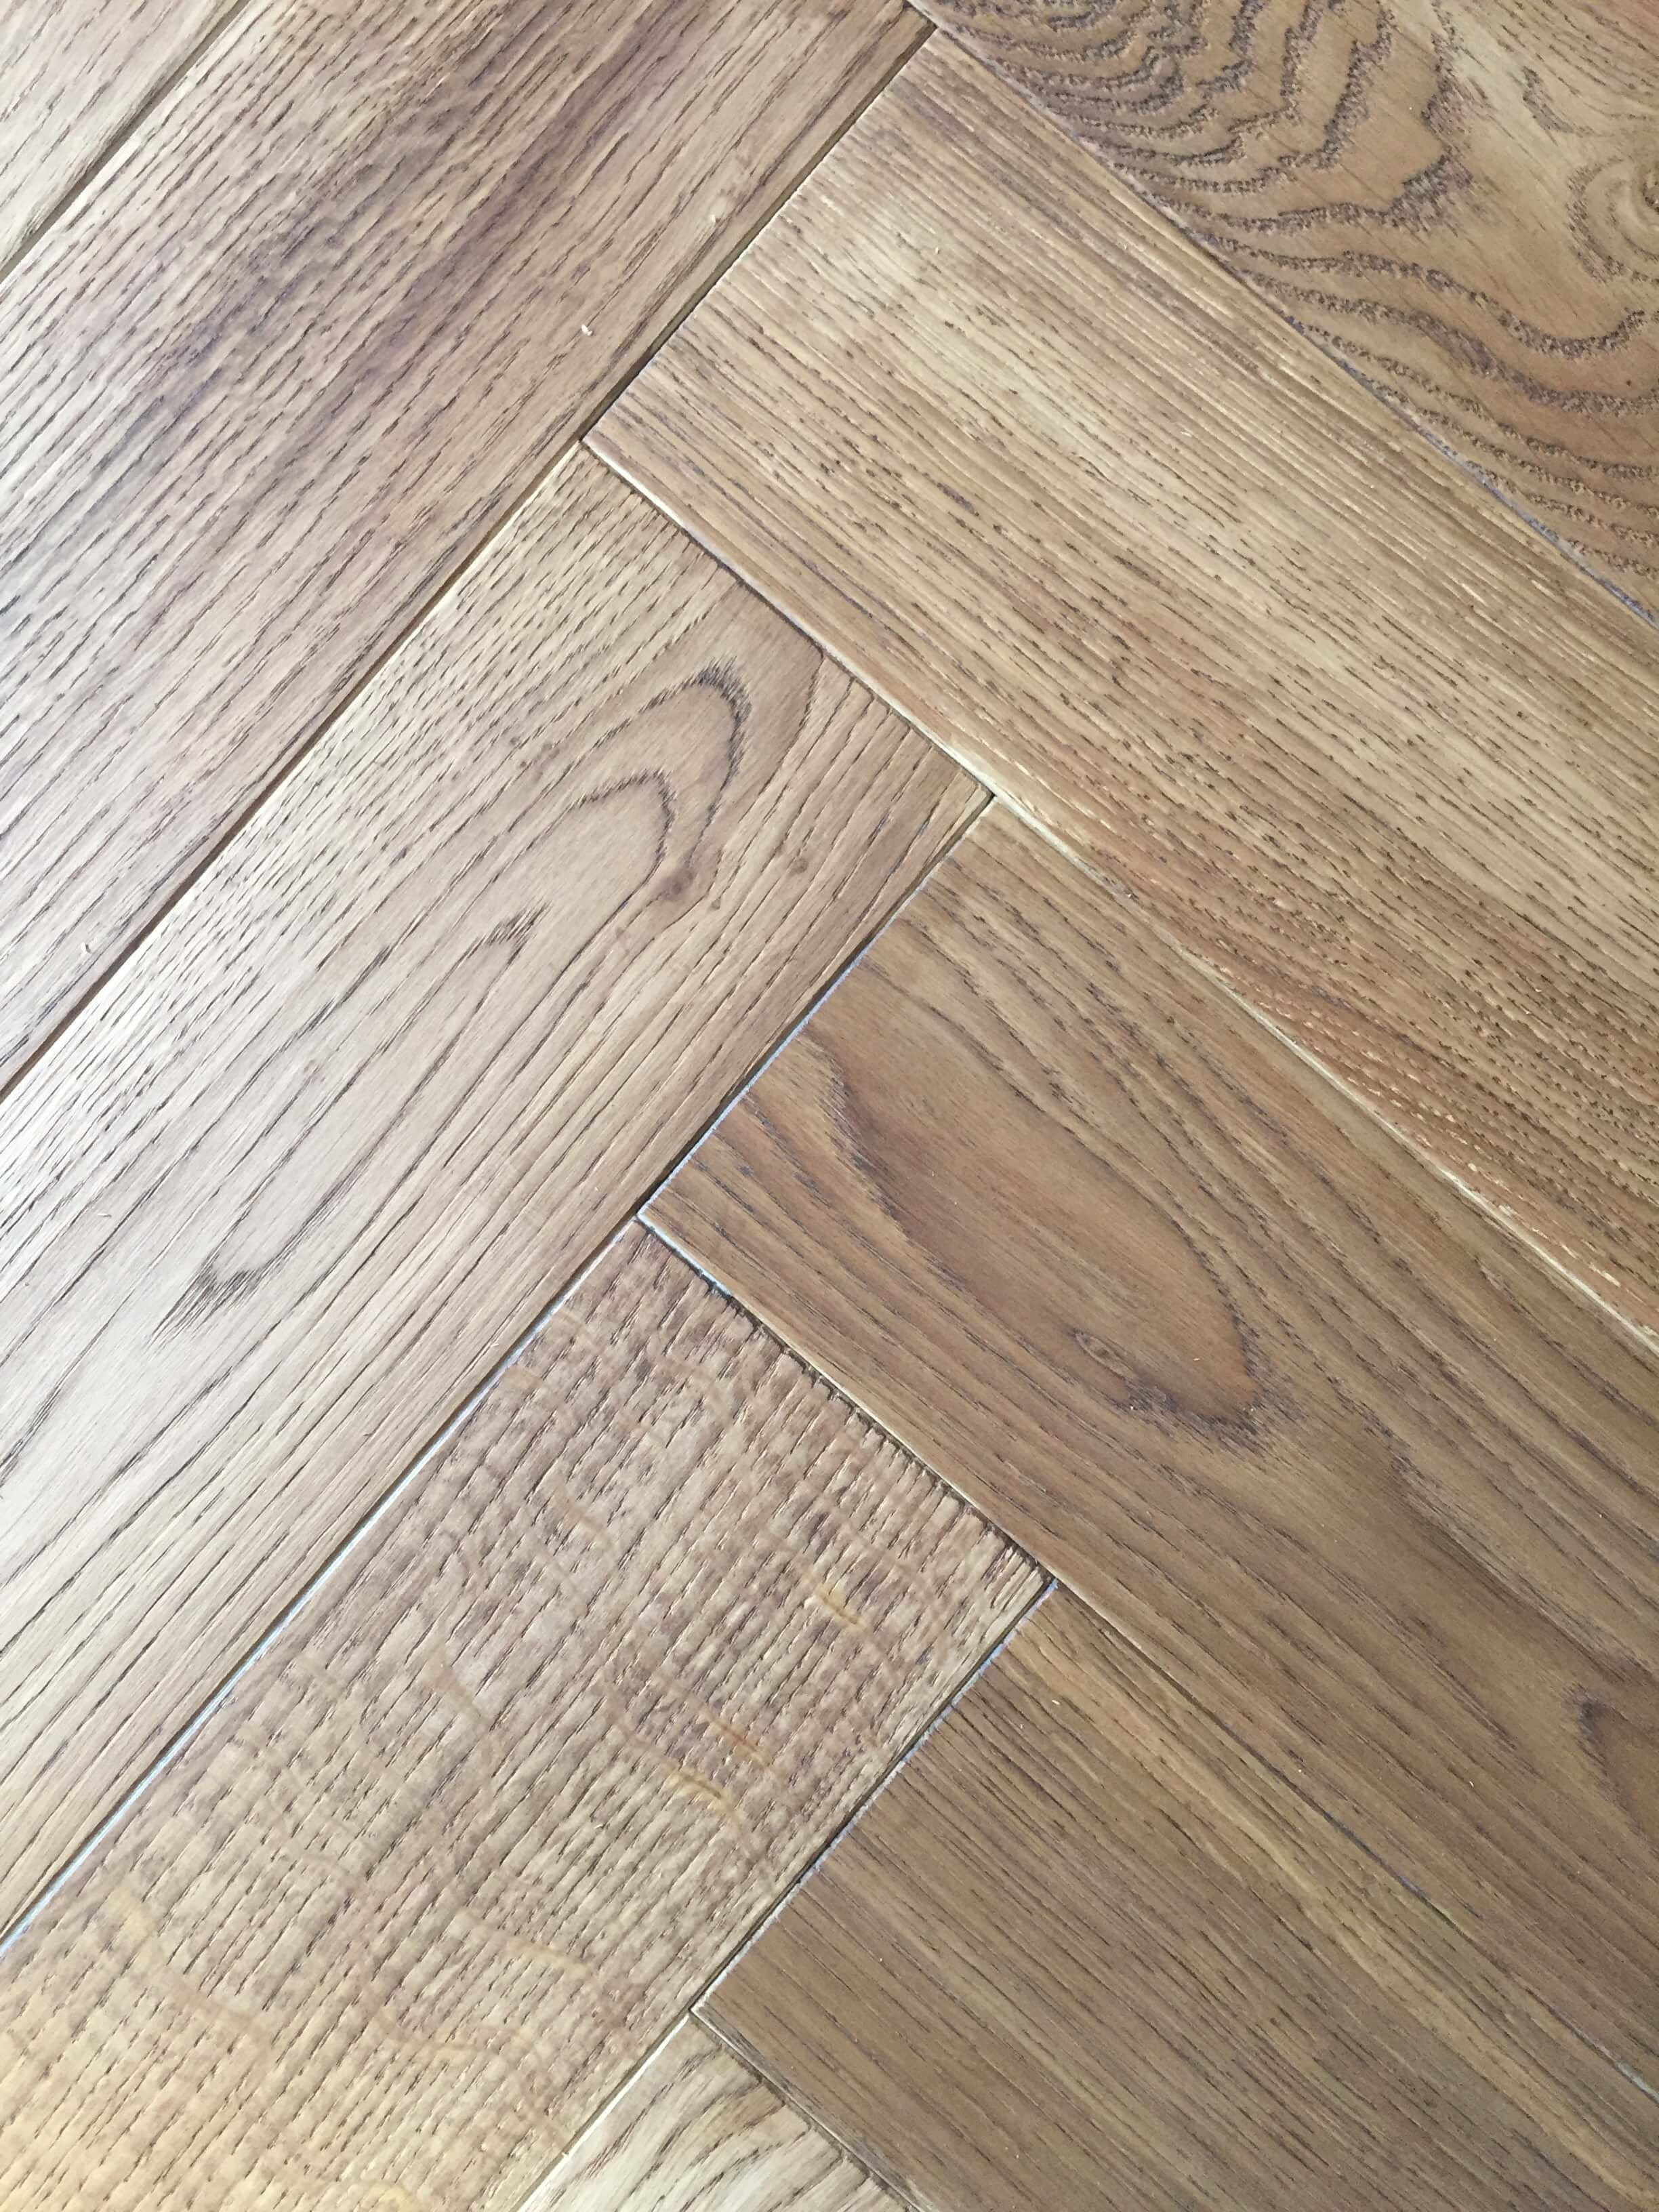 Hardwood Flooring Sale toronto Of Handscraped Engineered Hardwood Awesome Engineered Wood Flooring with Handscraped Engineered Hardwood Awesome Engineered Wood Flooring Brown Maple Hand Scraped Engineered Images